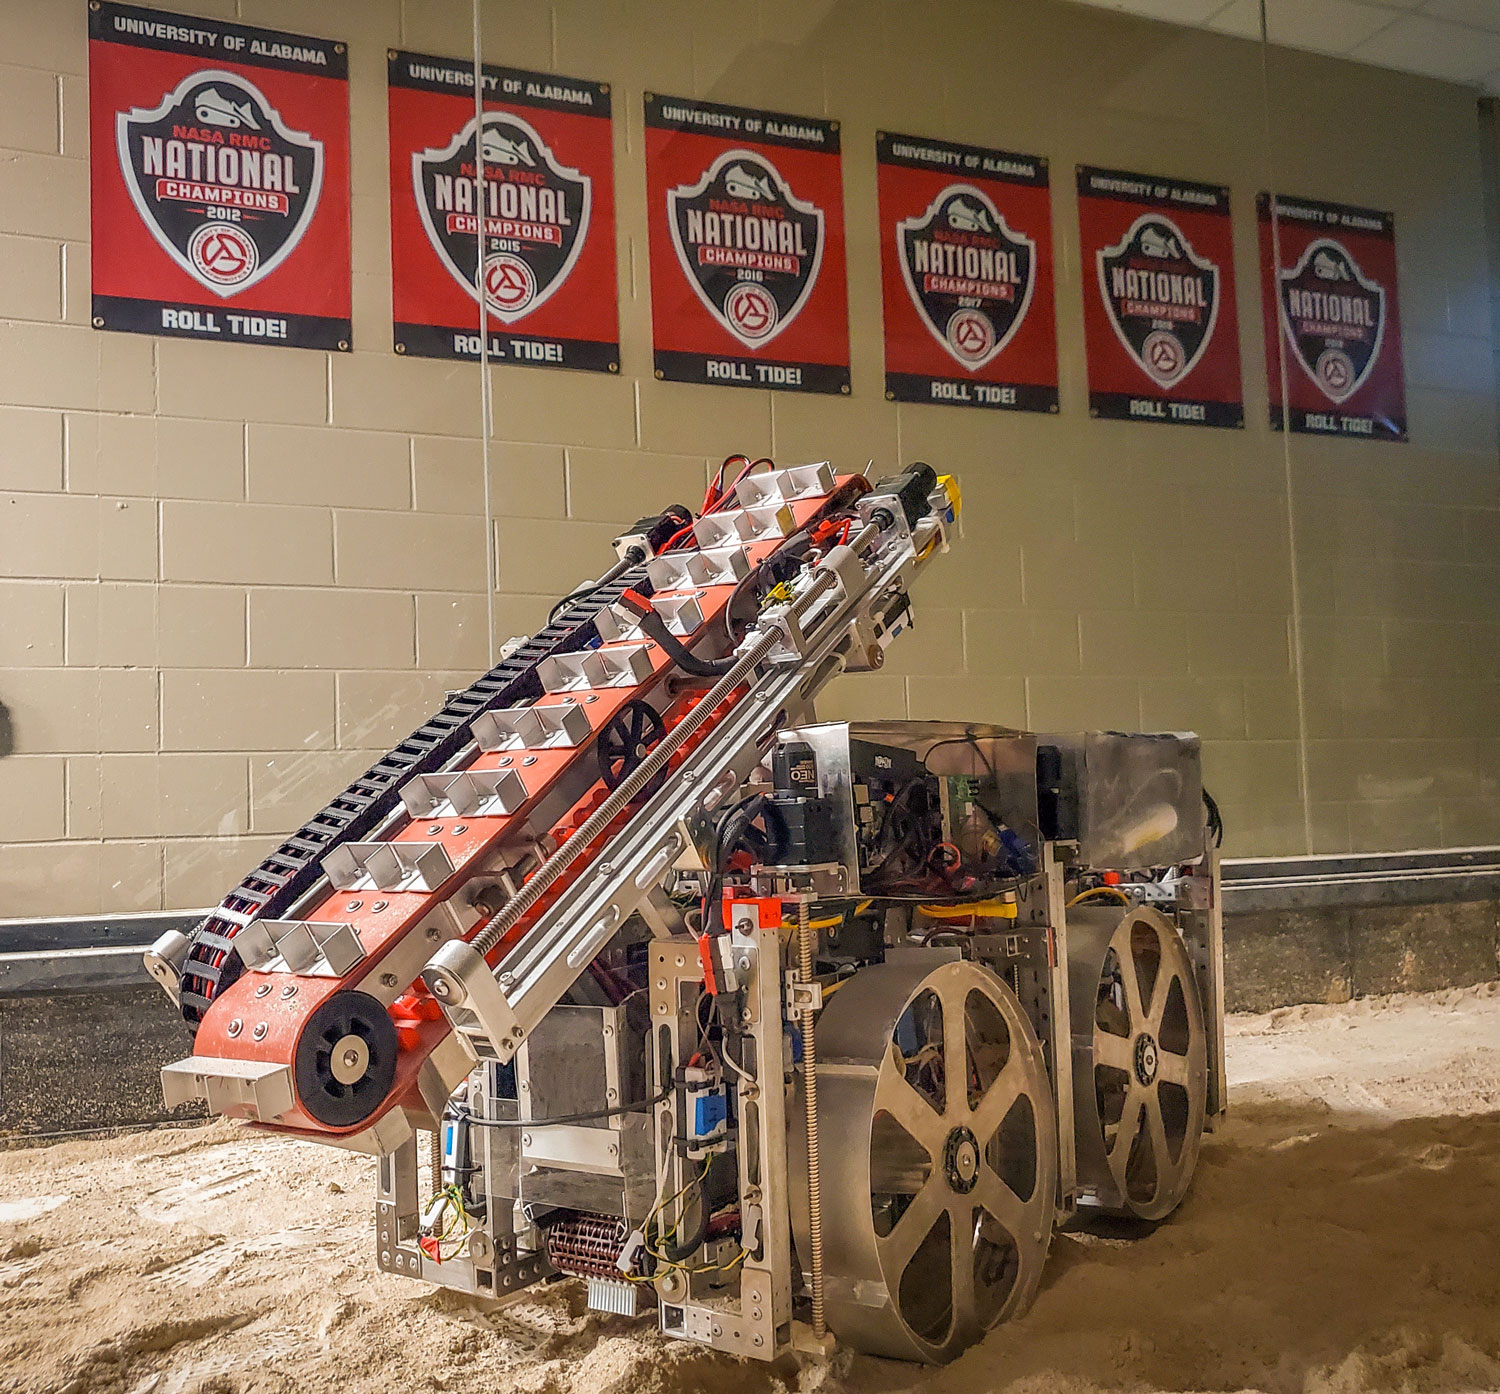 Twitter photo of a space rover robot in a room with sand